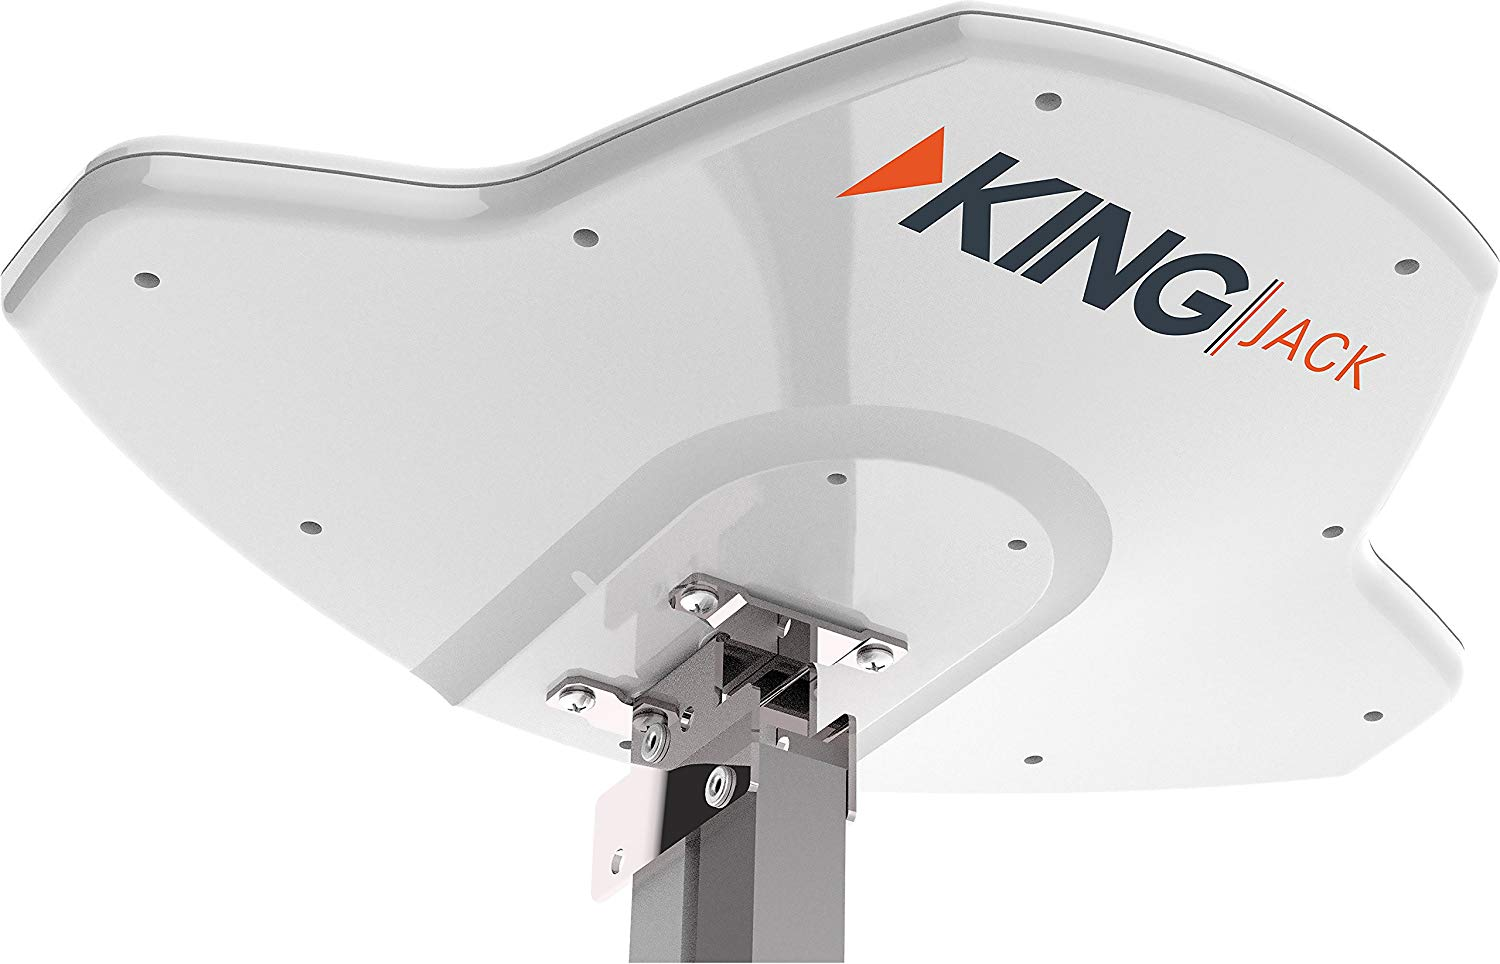 King K6B-OA8300 HDTV Batwing Antenna Replacement with Signal Meter